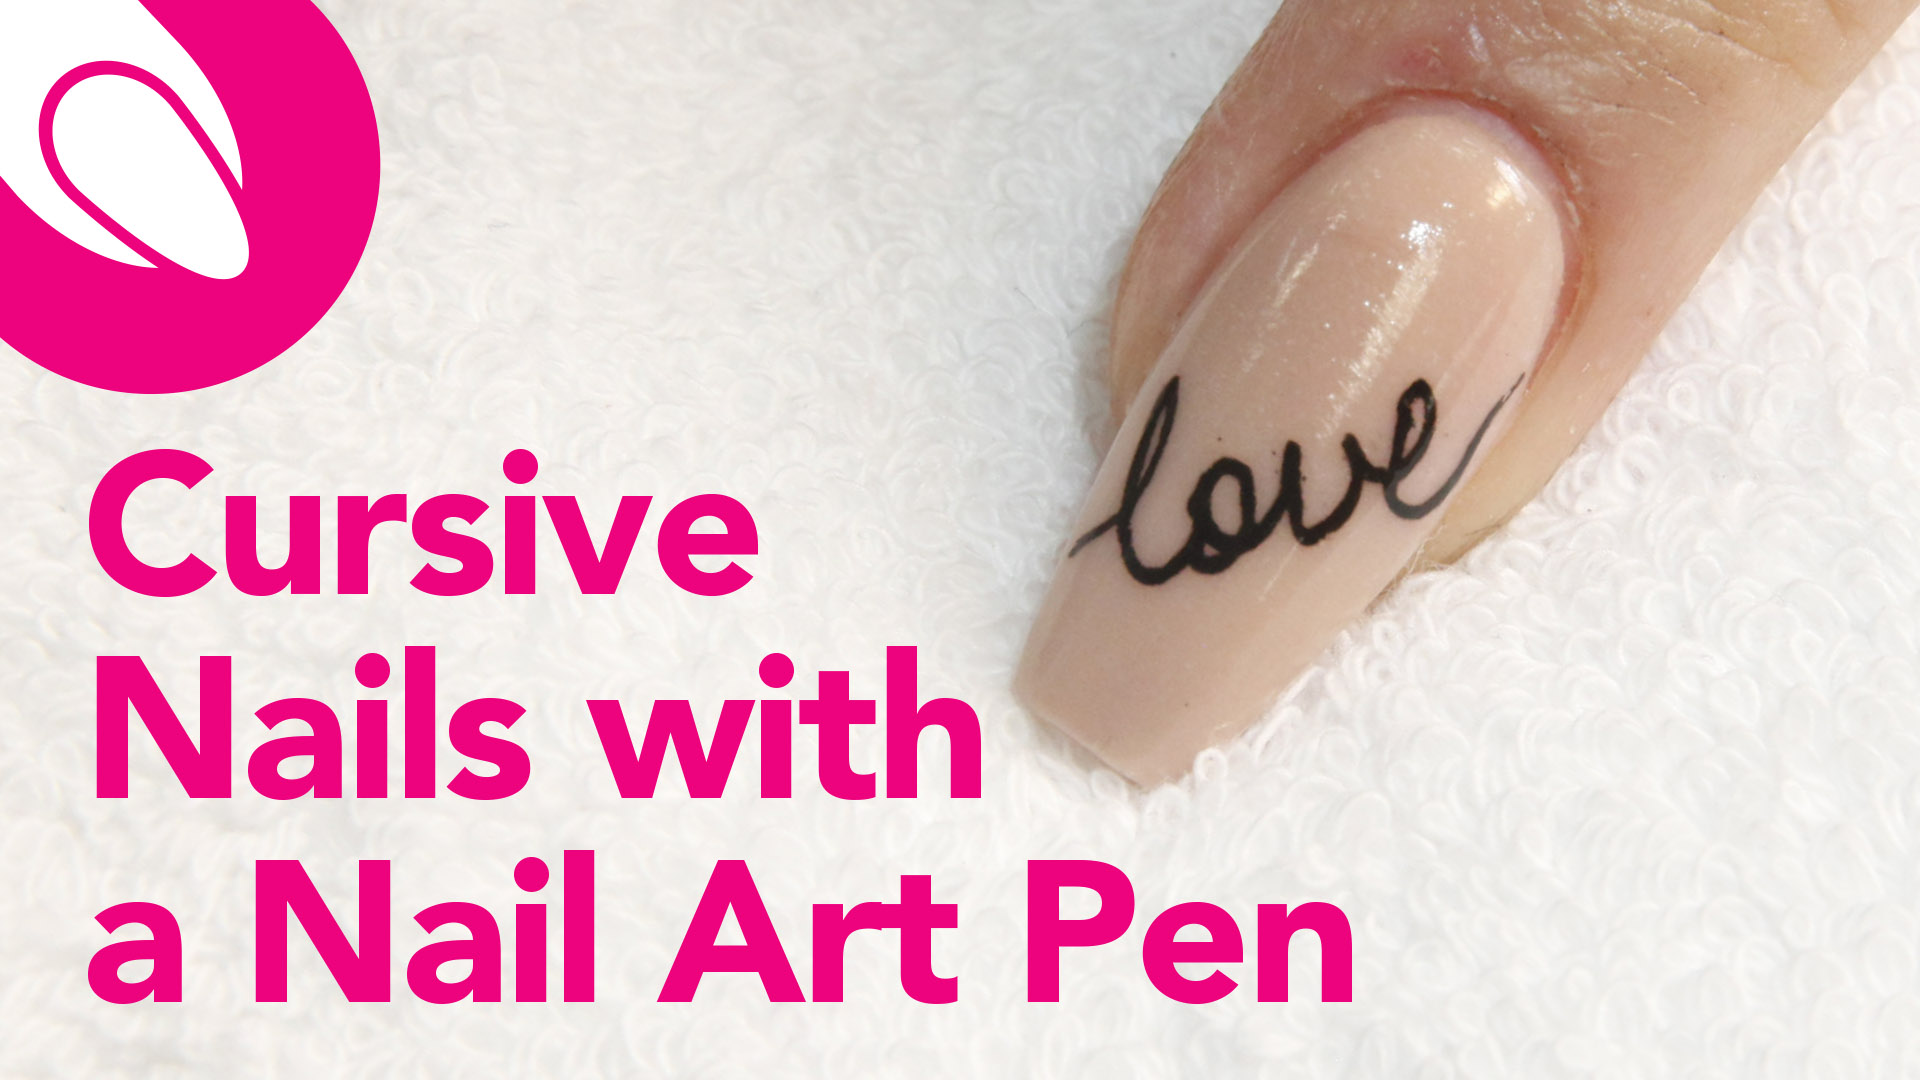 Quick Nail Tips: Write Cursive Love Notes with the Cina Nail Art Pen